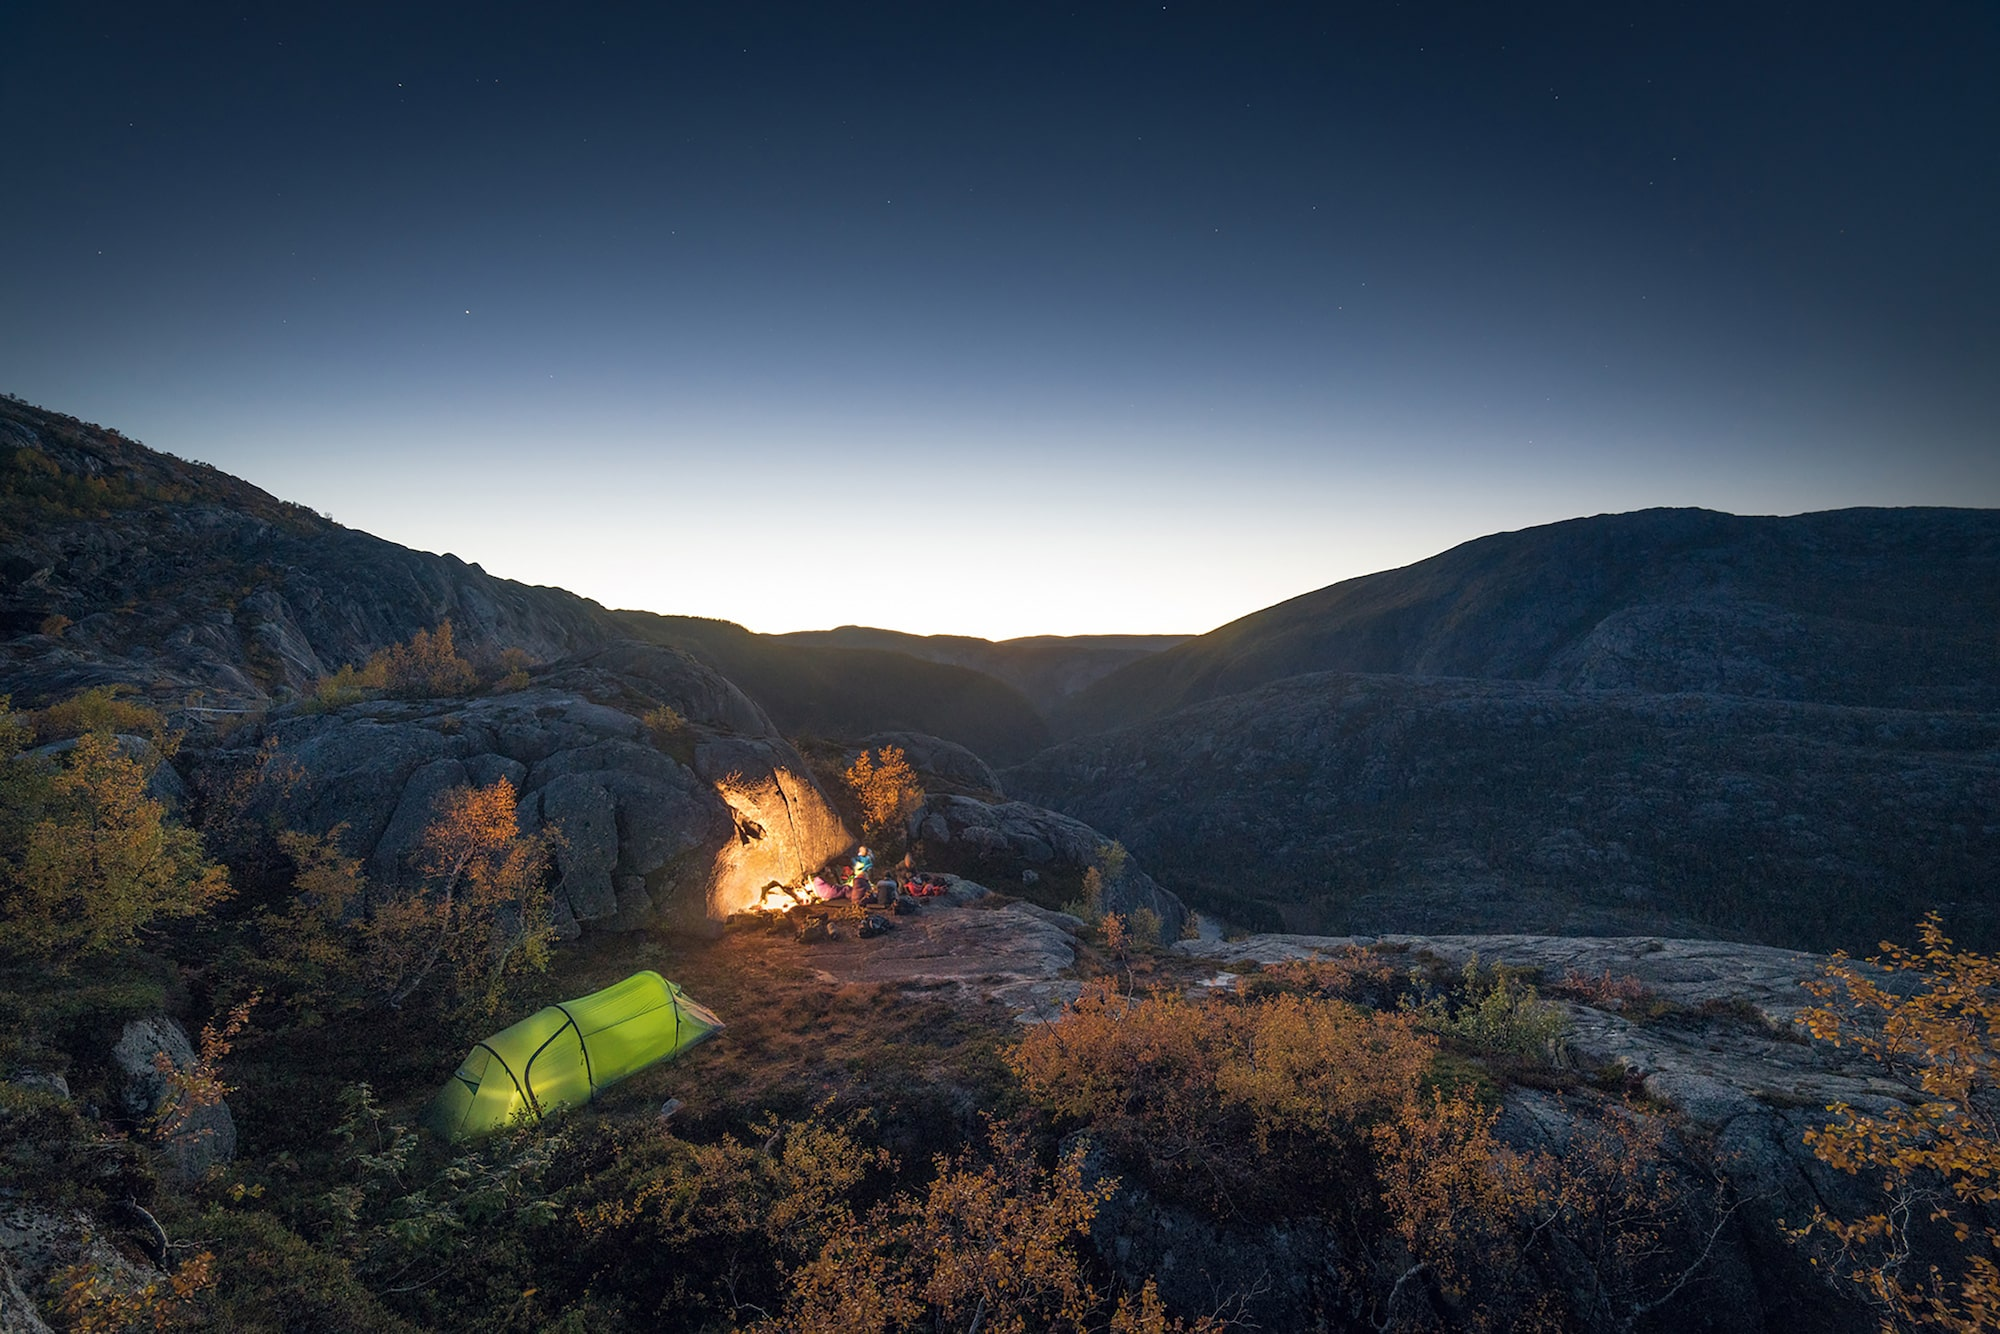 Kyle-Meyr-Sony-alpha-99II-group-of-climbers-camping-on-a-mountain-illuminated-by-late-evening-sun